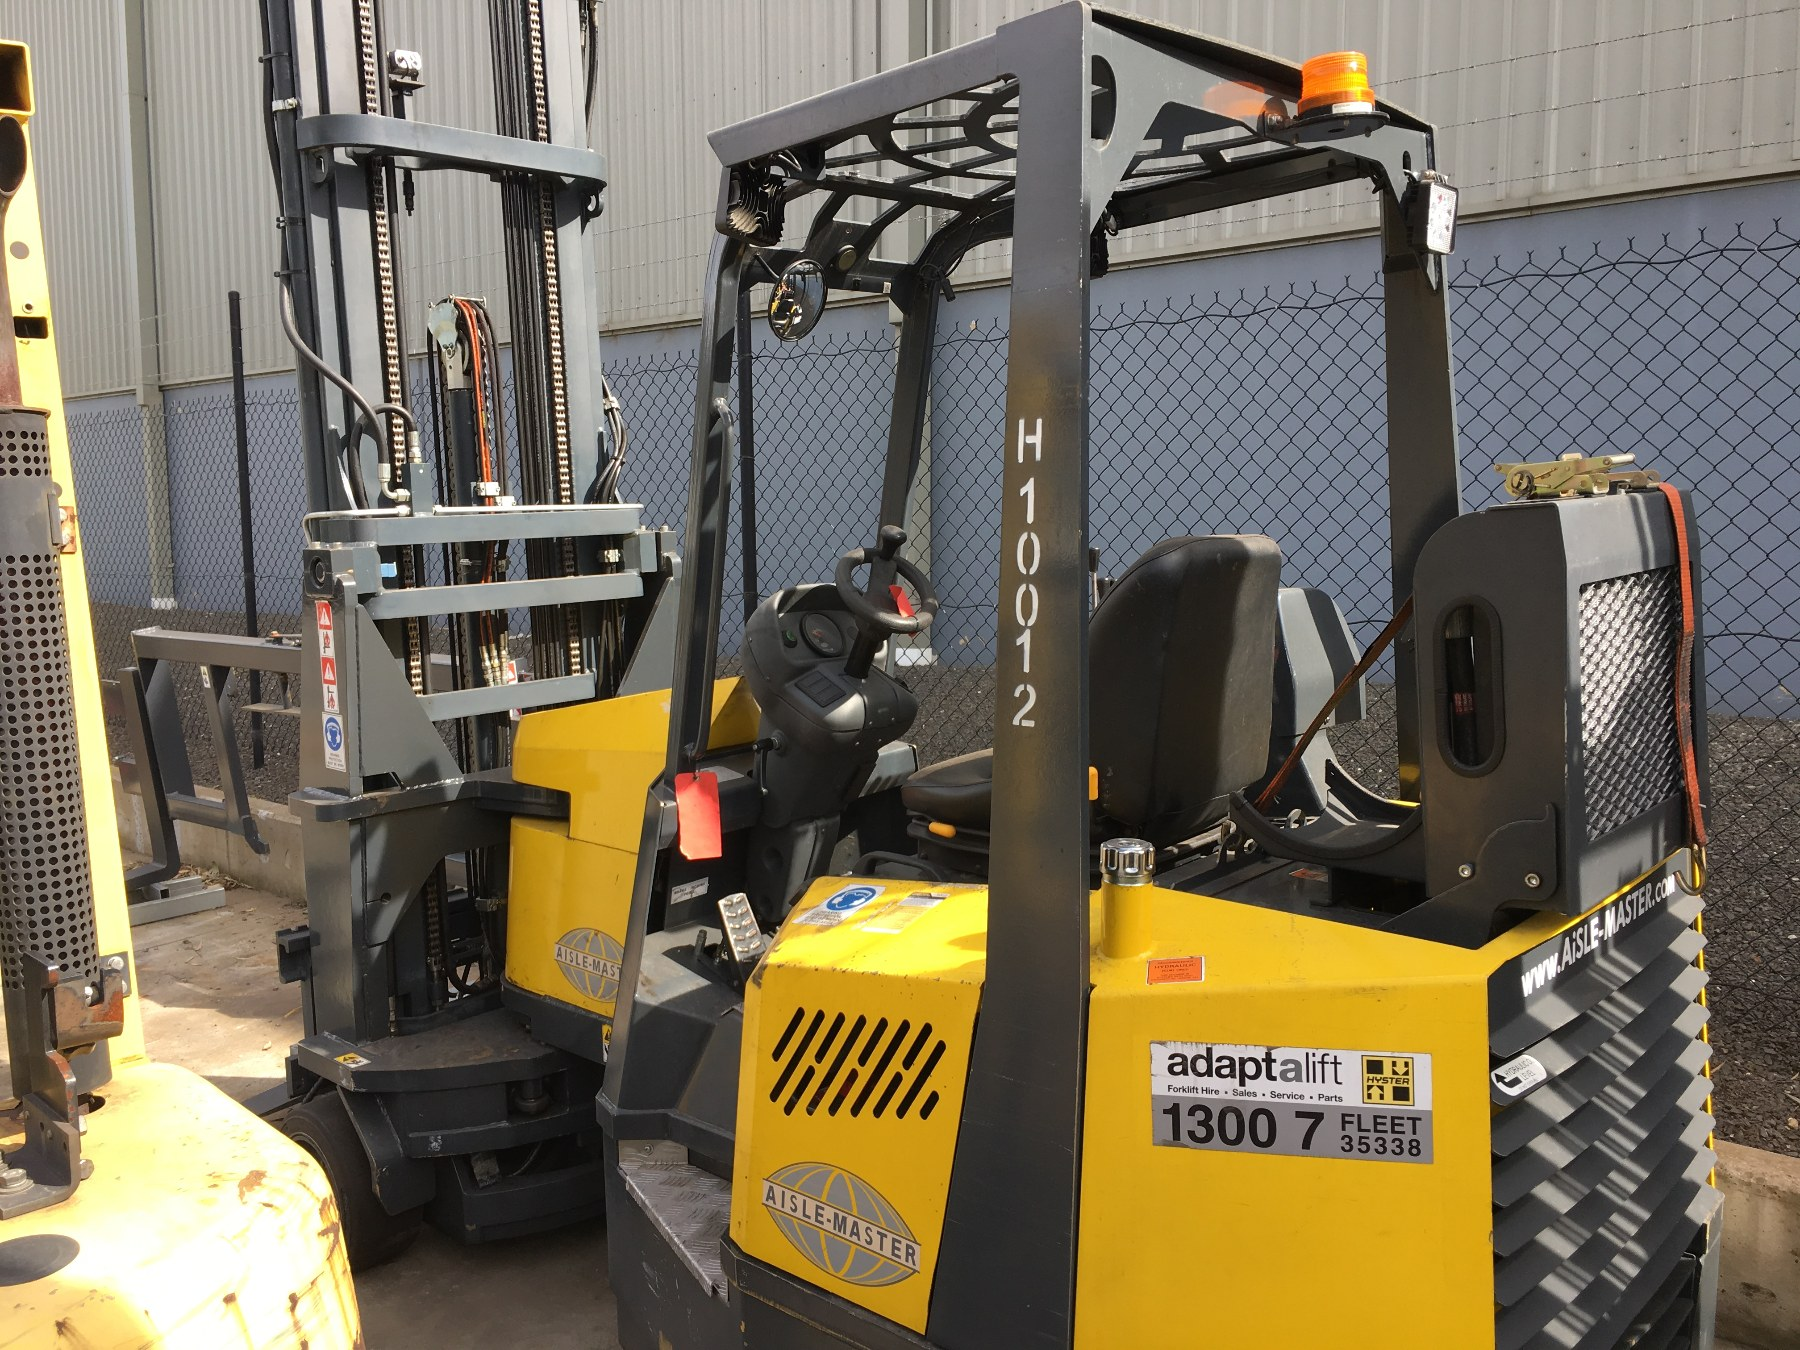 Used forklift: AISLE-MASTER 20WH